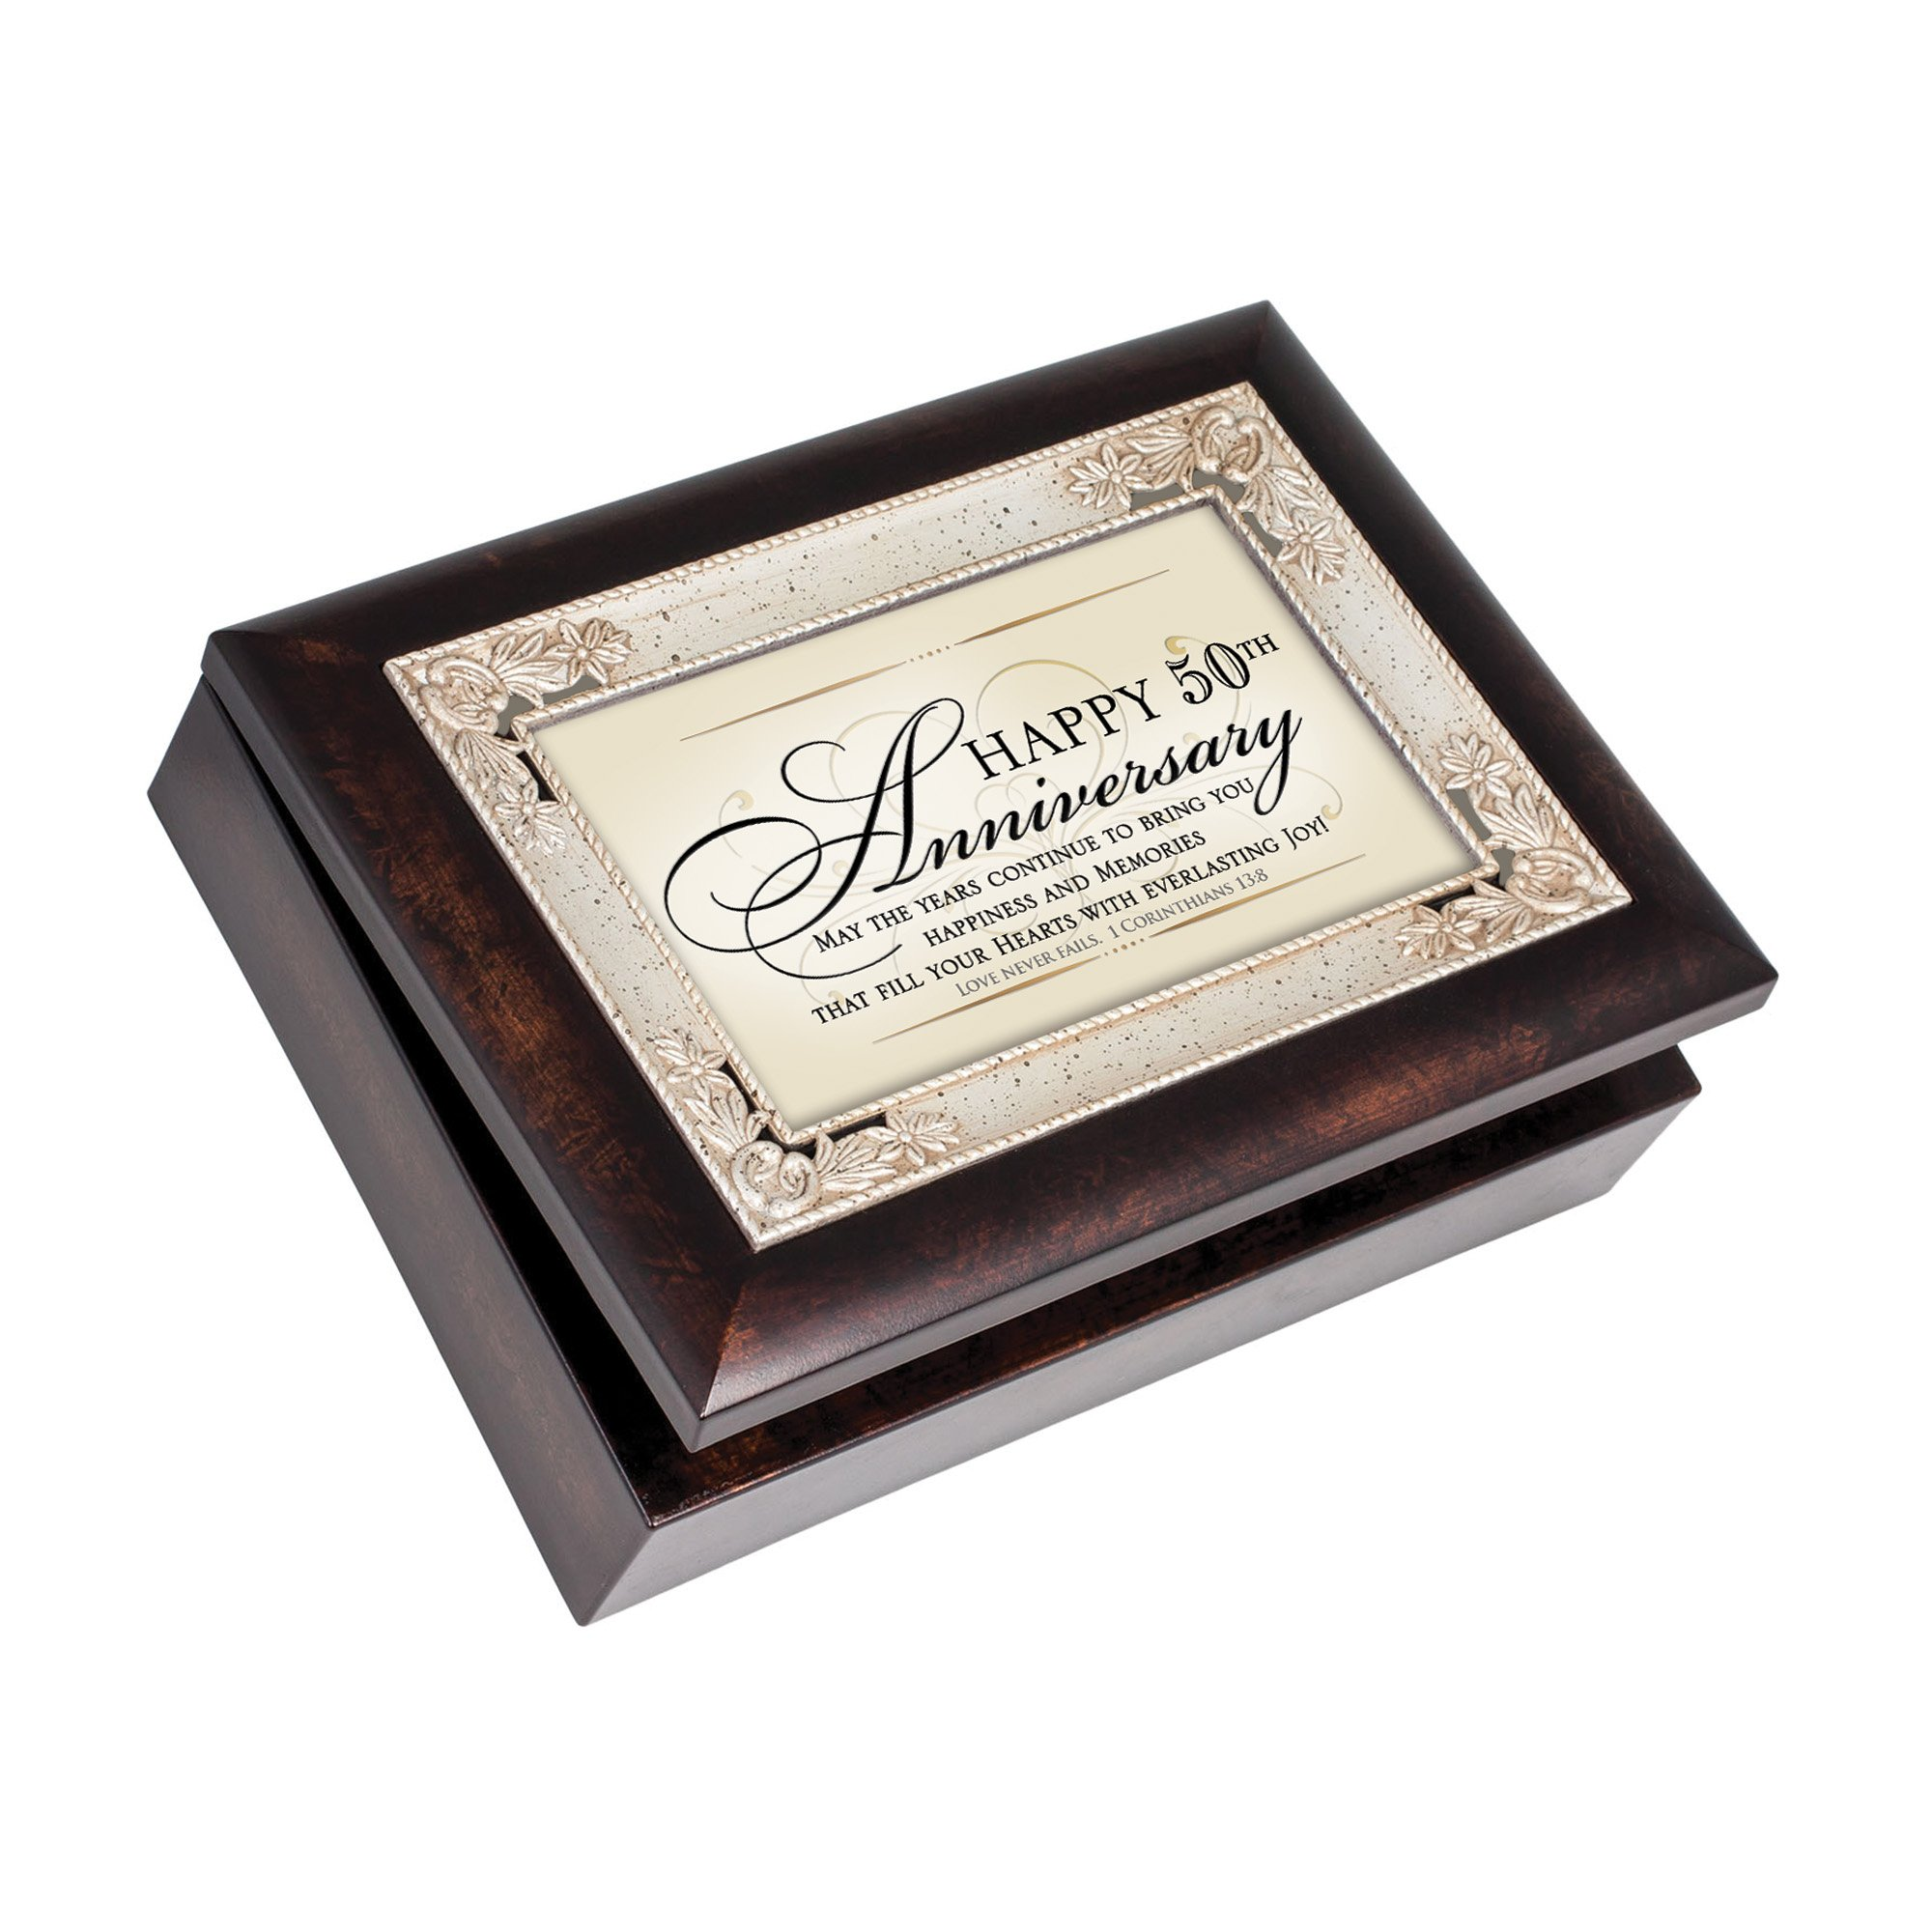 Cottage Garden Happy 50th Anniversary Burlwood Jewelry Music Box Plays How Great Thou Art